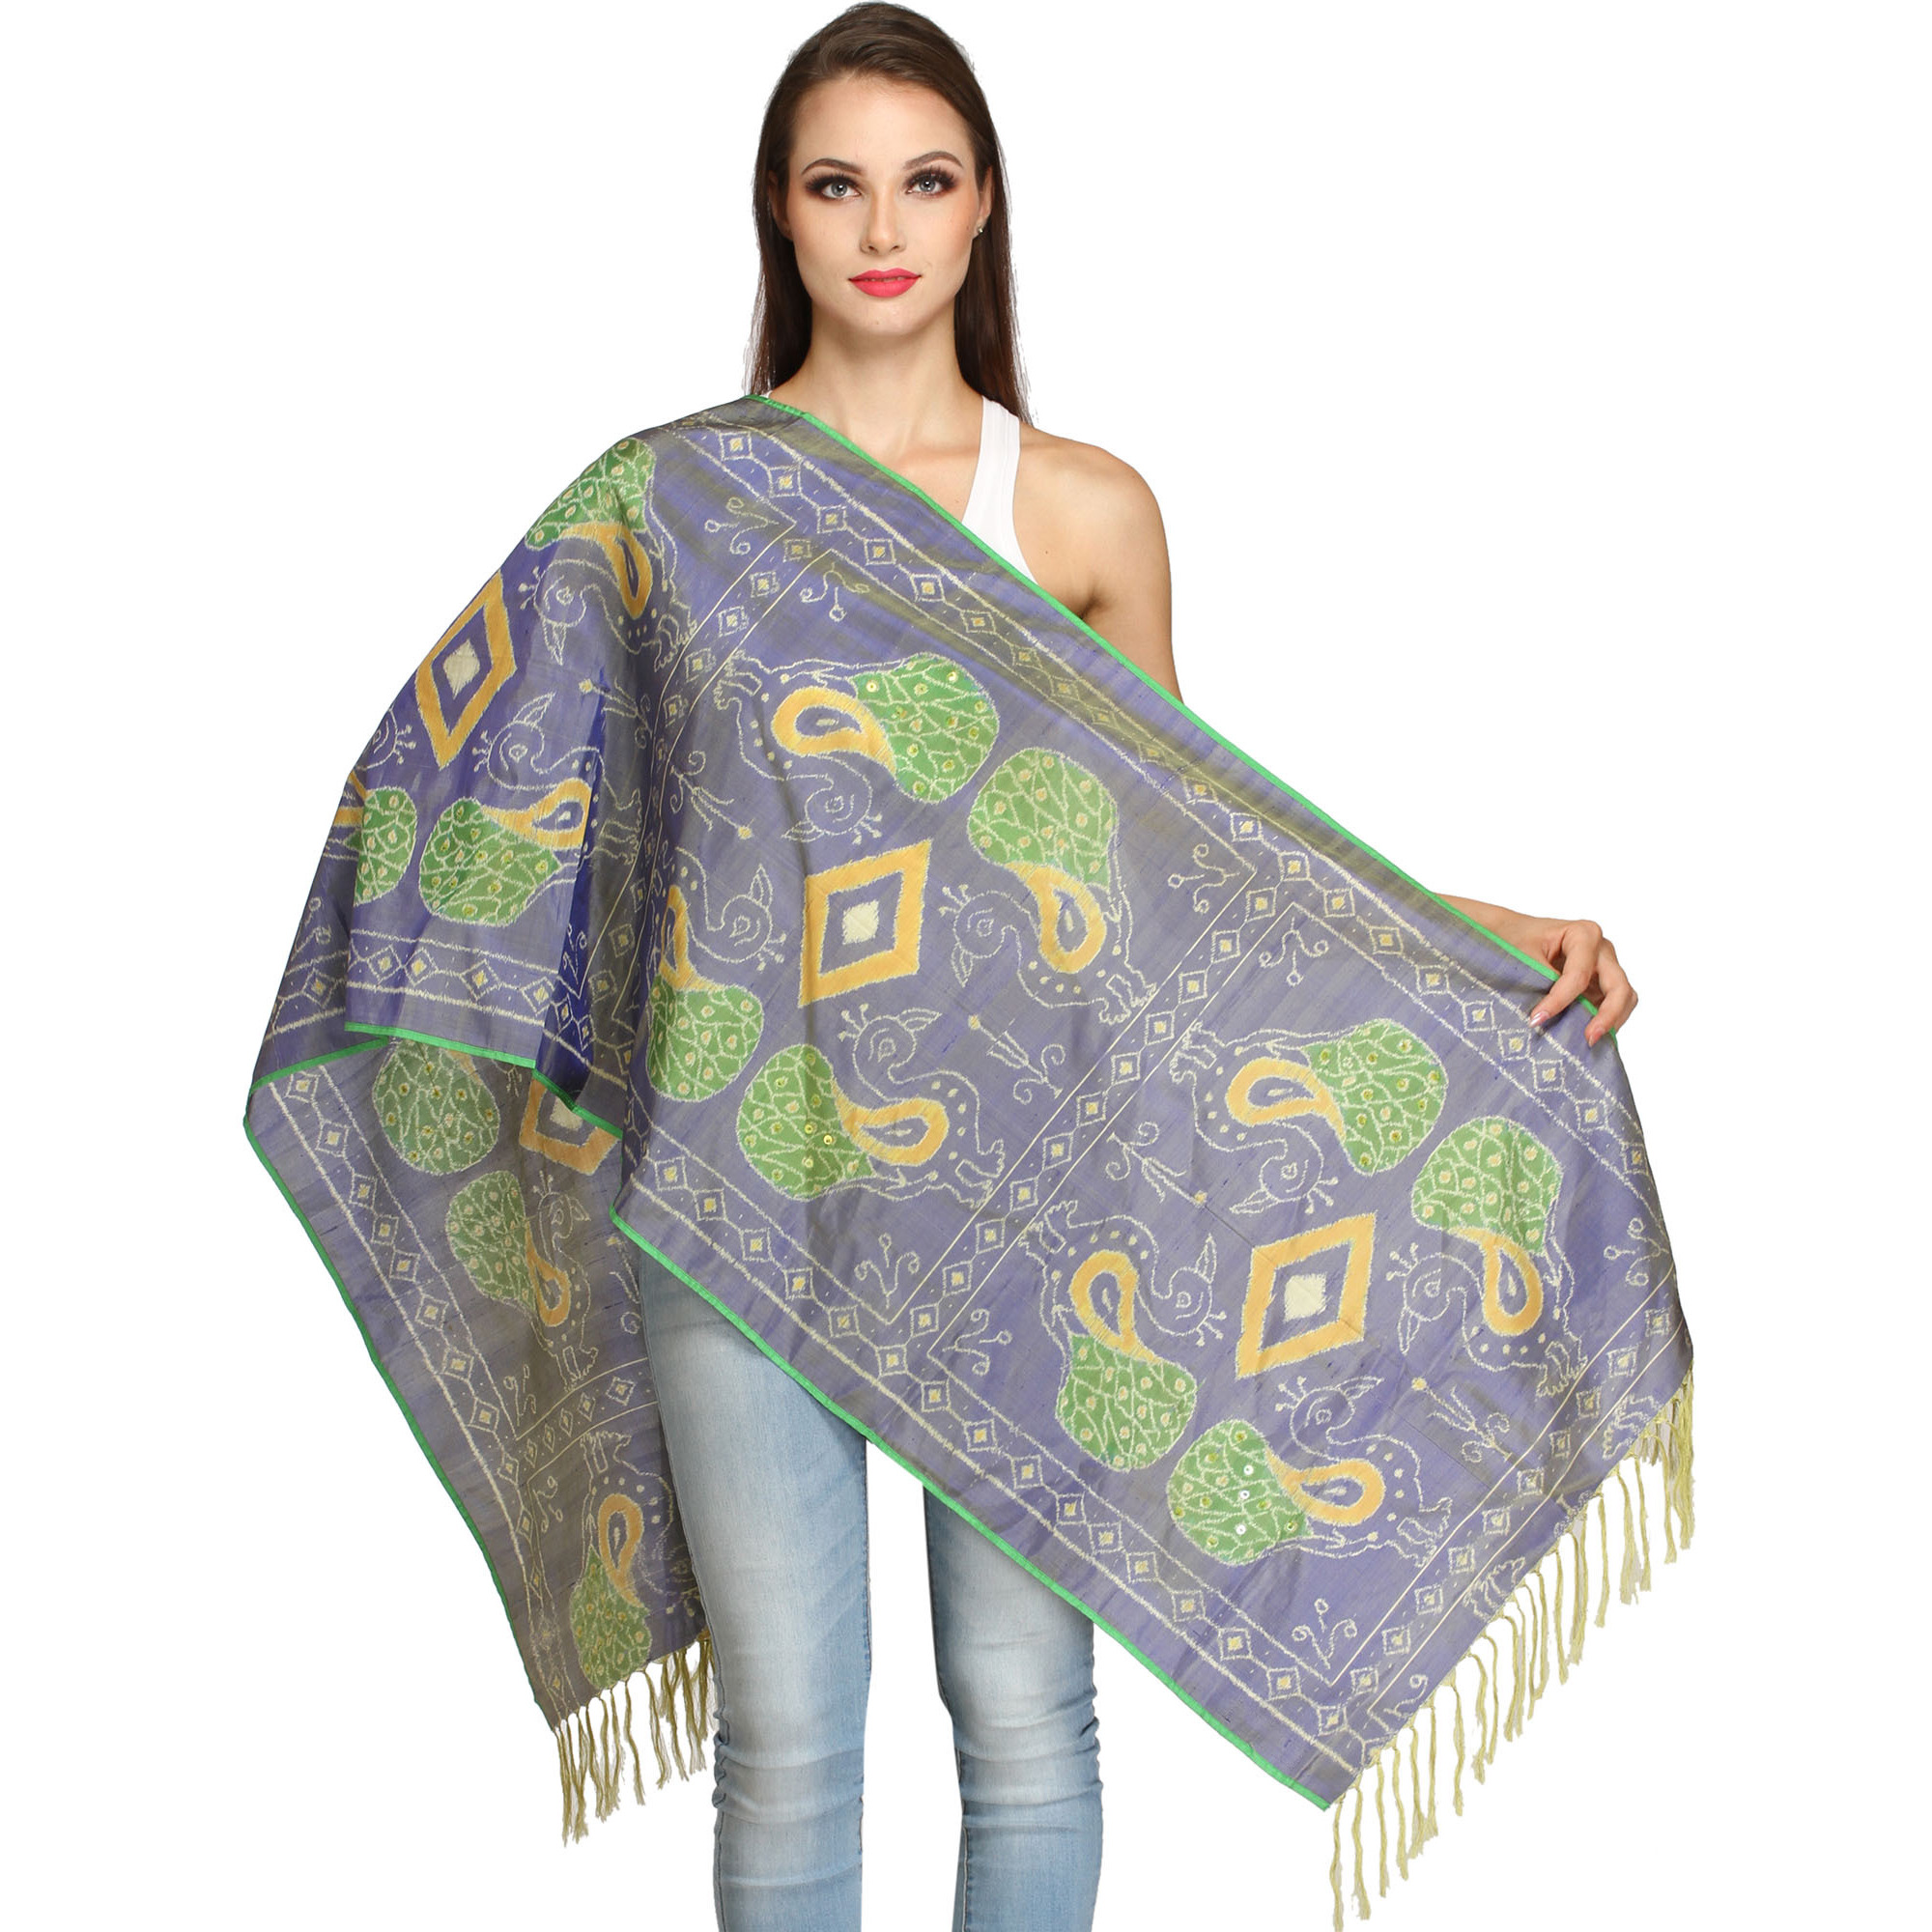 Tempest-Blue Handloom Stole with Ikat Woven Peacocks and Embroidered Beads